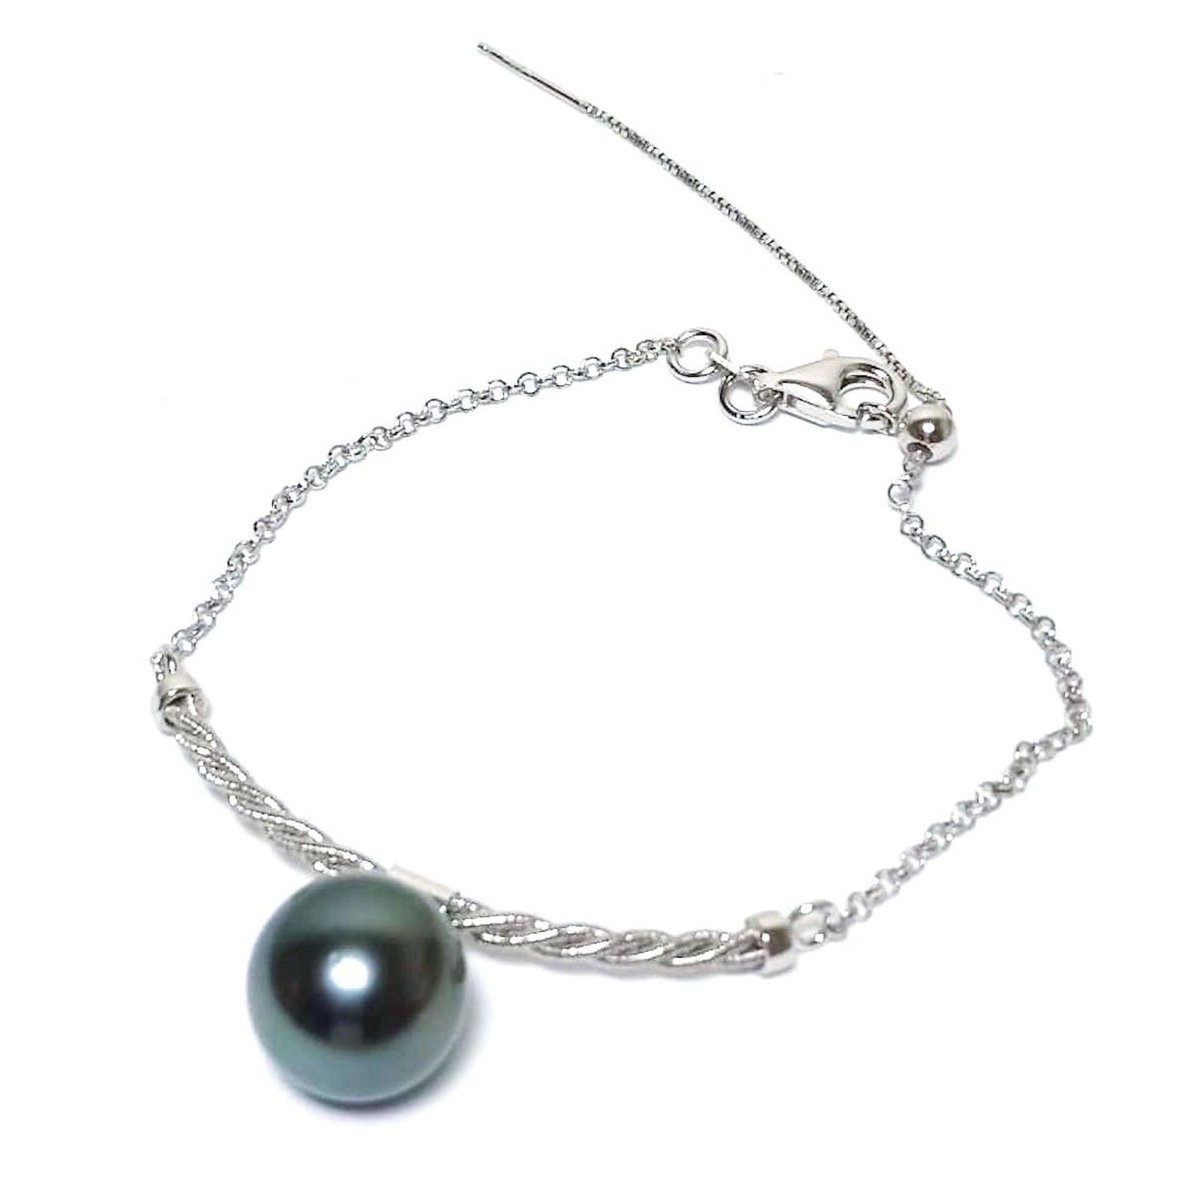 Excited to share the latest addition to my #etsy shop: Best for Gift! 18K White Gold FilledFrench Polynesia 11.5mm Tahitian South Sea Natural Peacock Black Round Pearl 6.5 -7.5 inches Bracelet  #gold #slideclasp #round #floral #yes #pearl #women